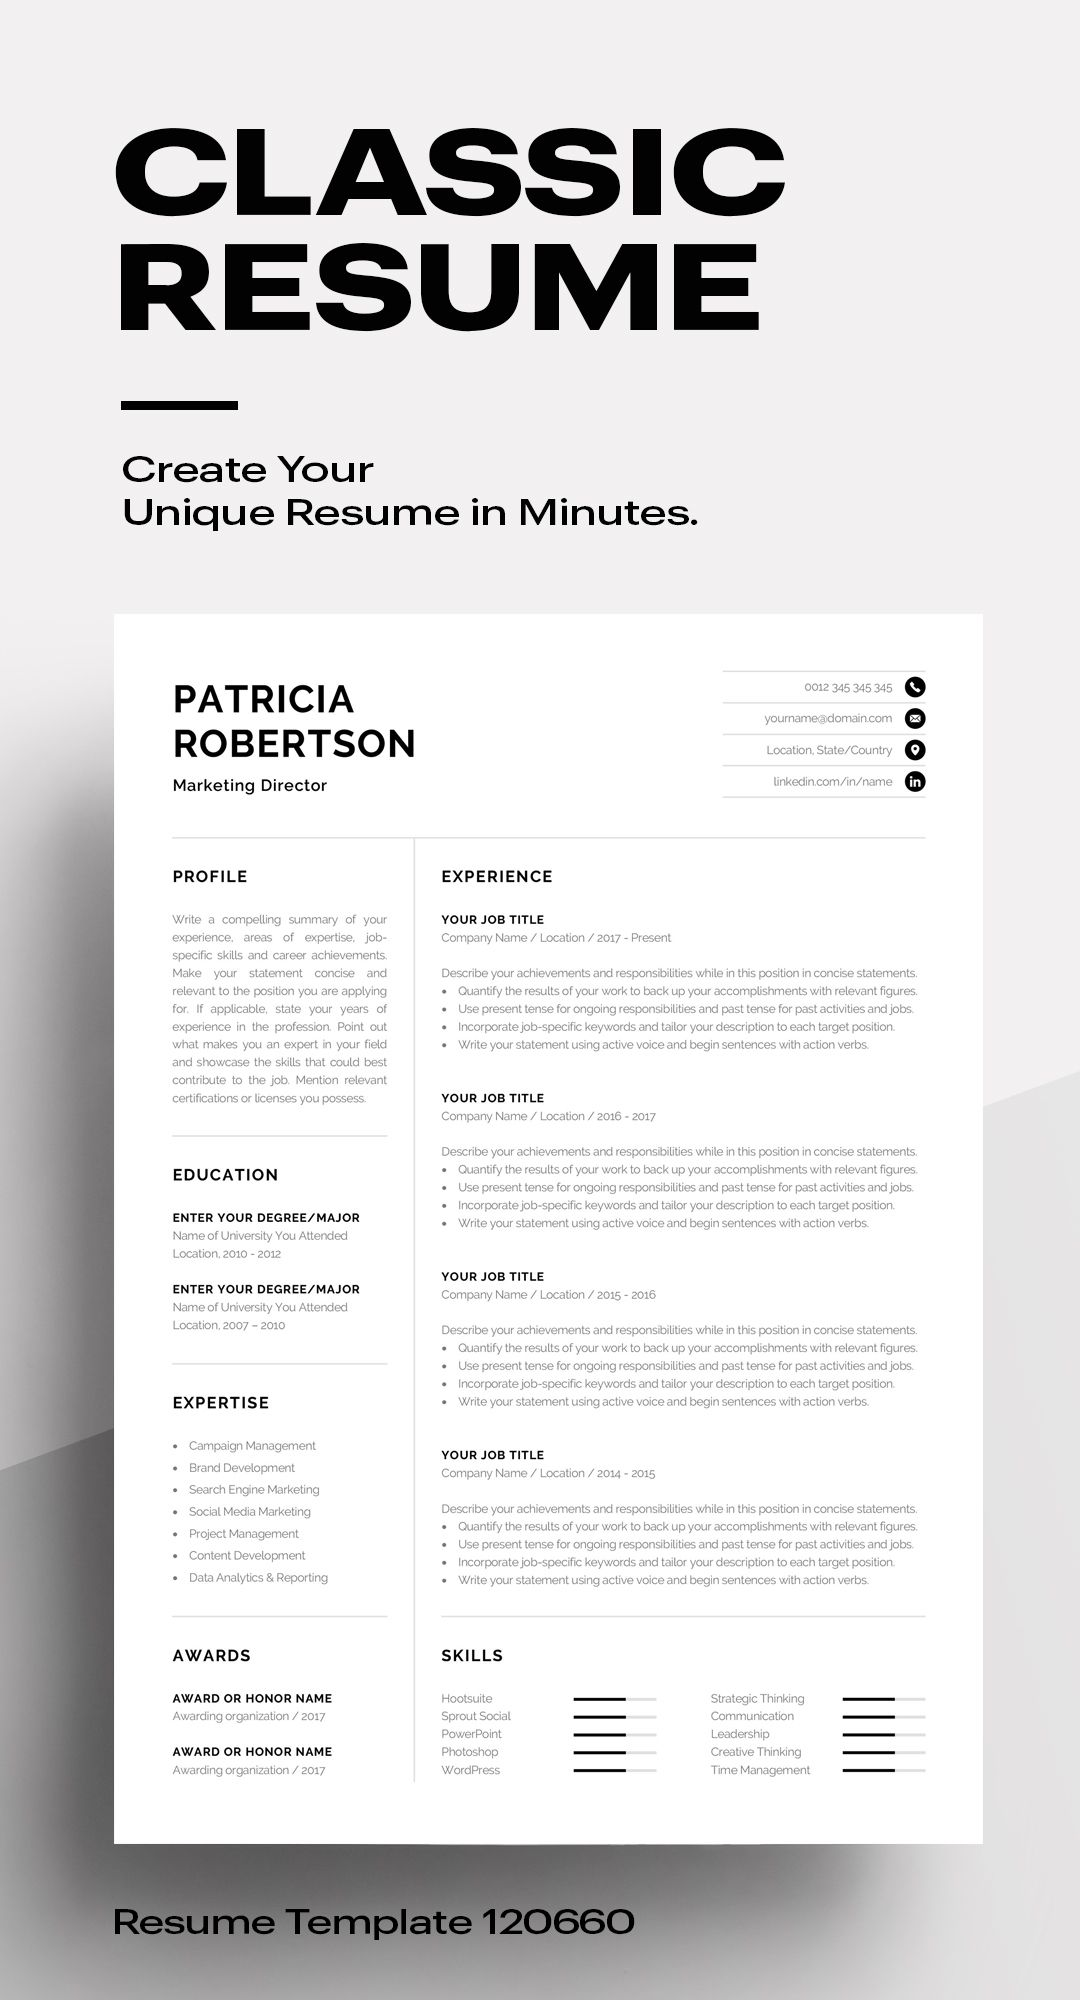 Classic Resume Template 120670 (color grey) MS Word